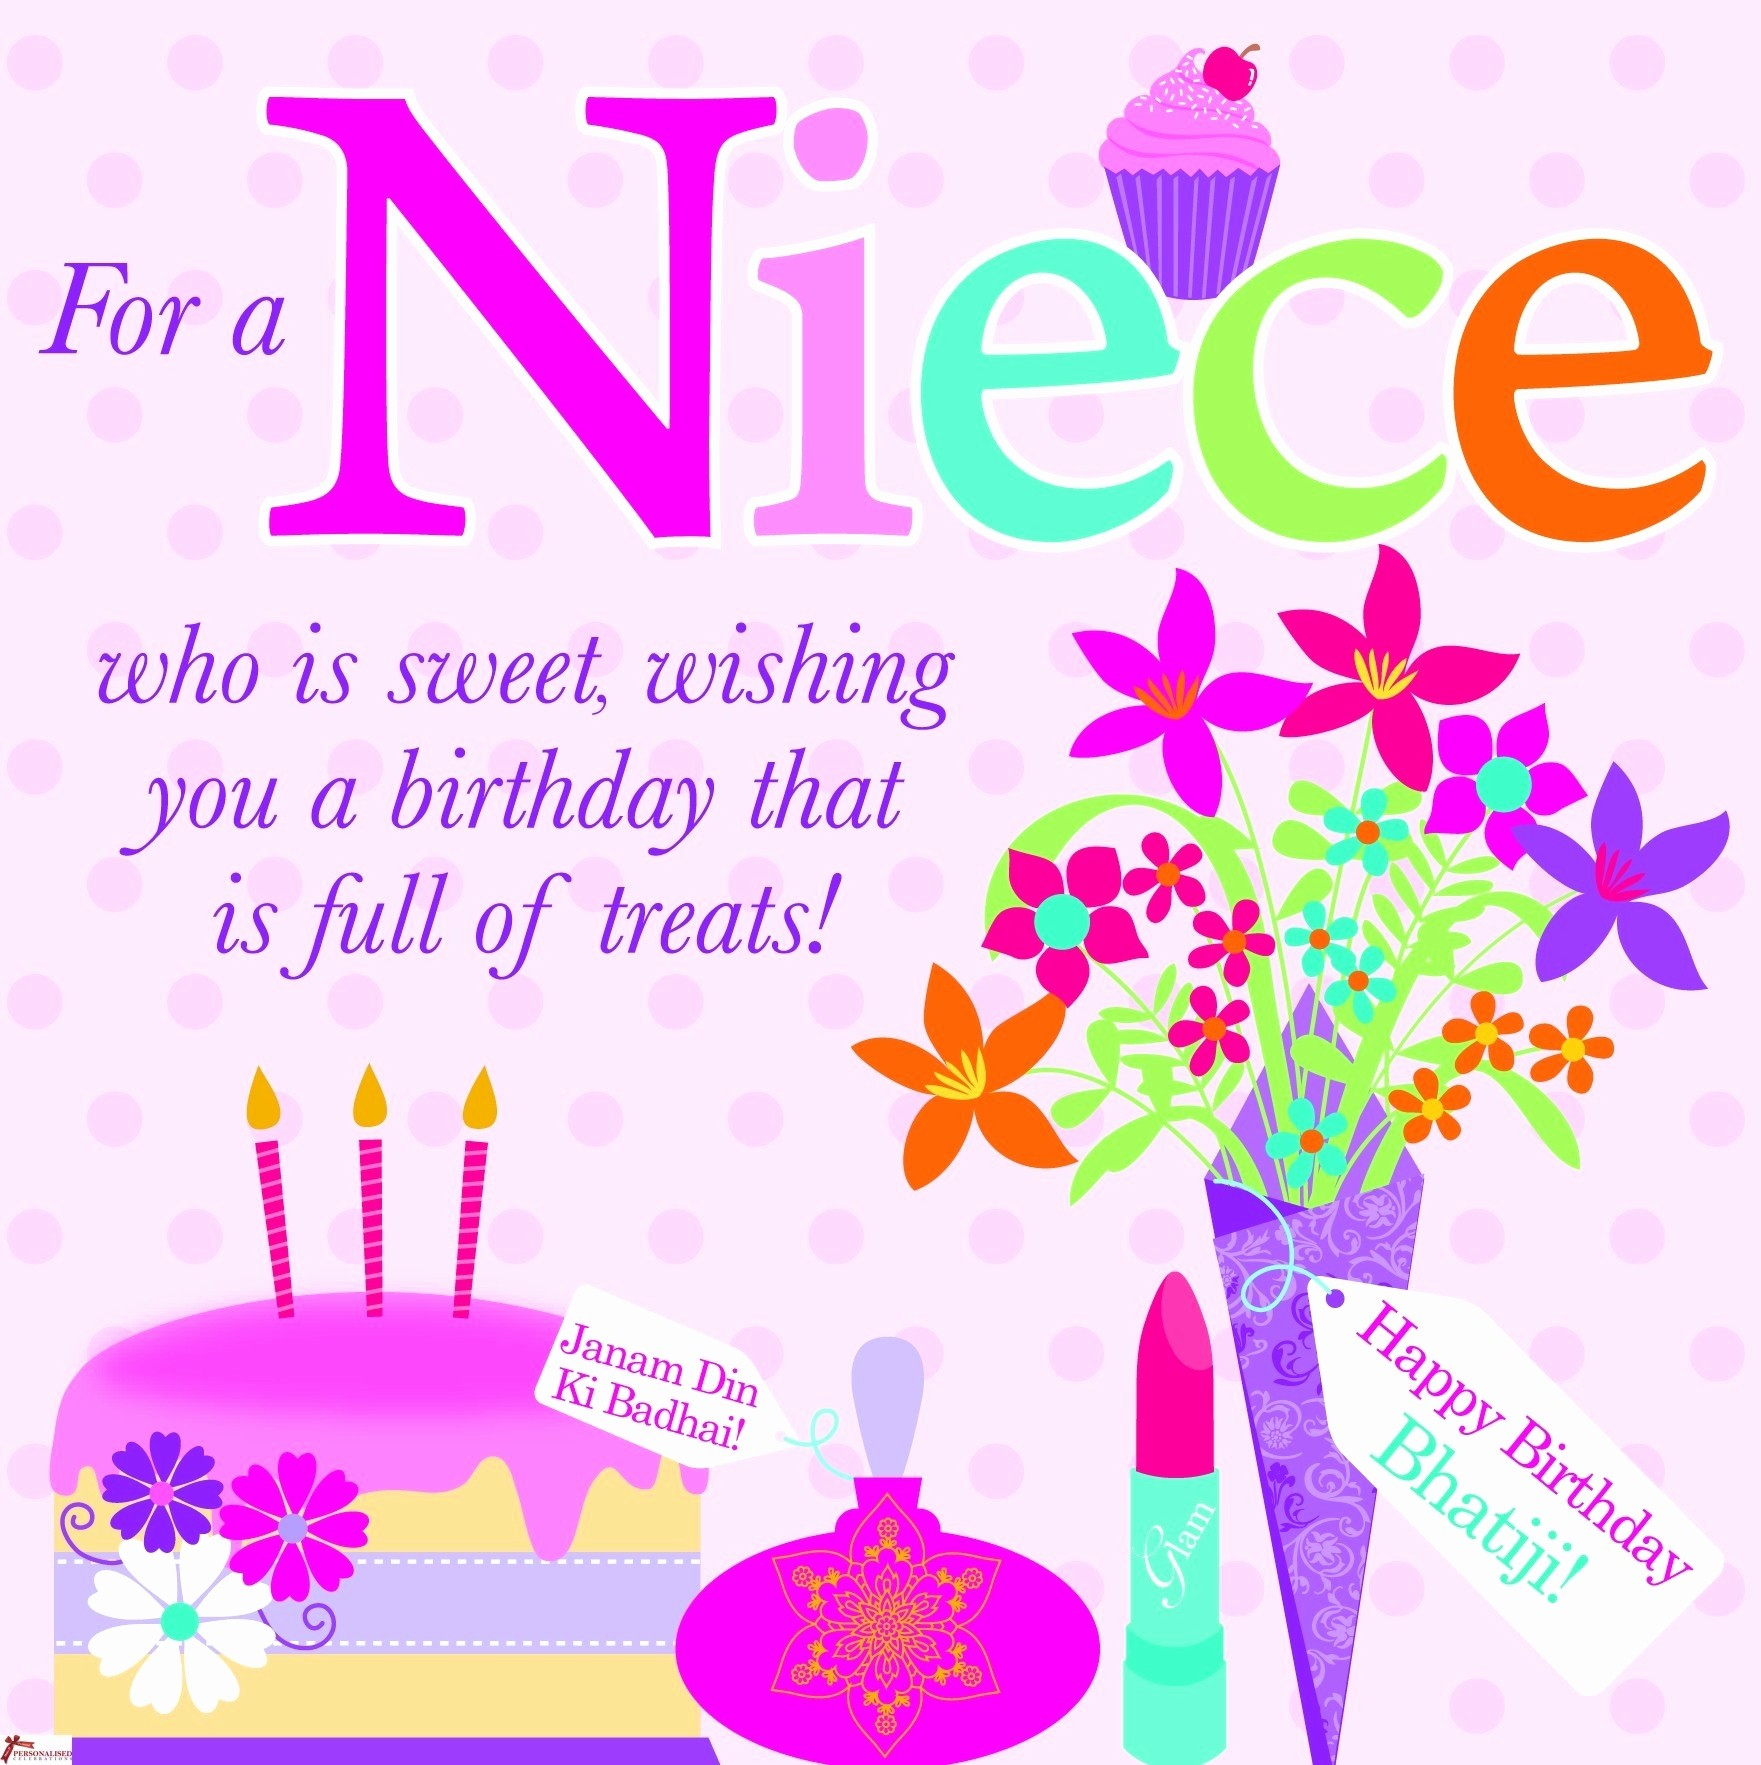 18th birthday card messages niece ; 18th-birthday-card-messages-new-18th-birthday-quotes-for-niece-elegant-birthday-quotes-for-niece-of-18th-birthday-card-messages